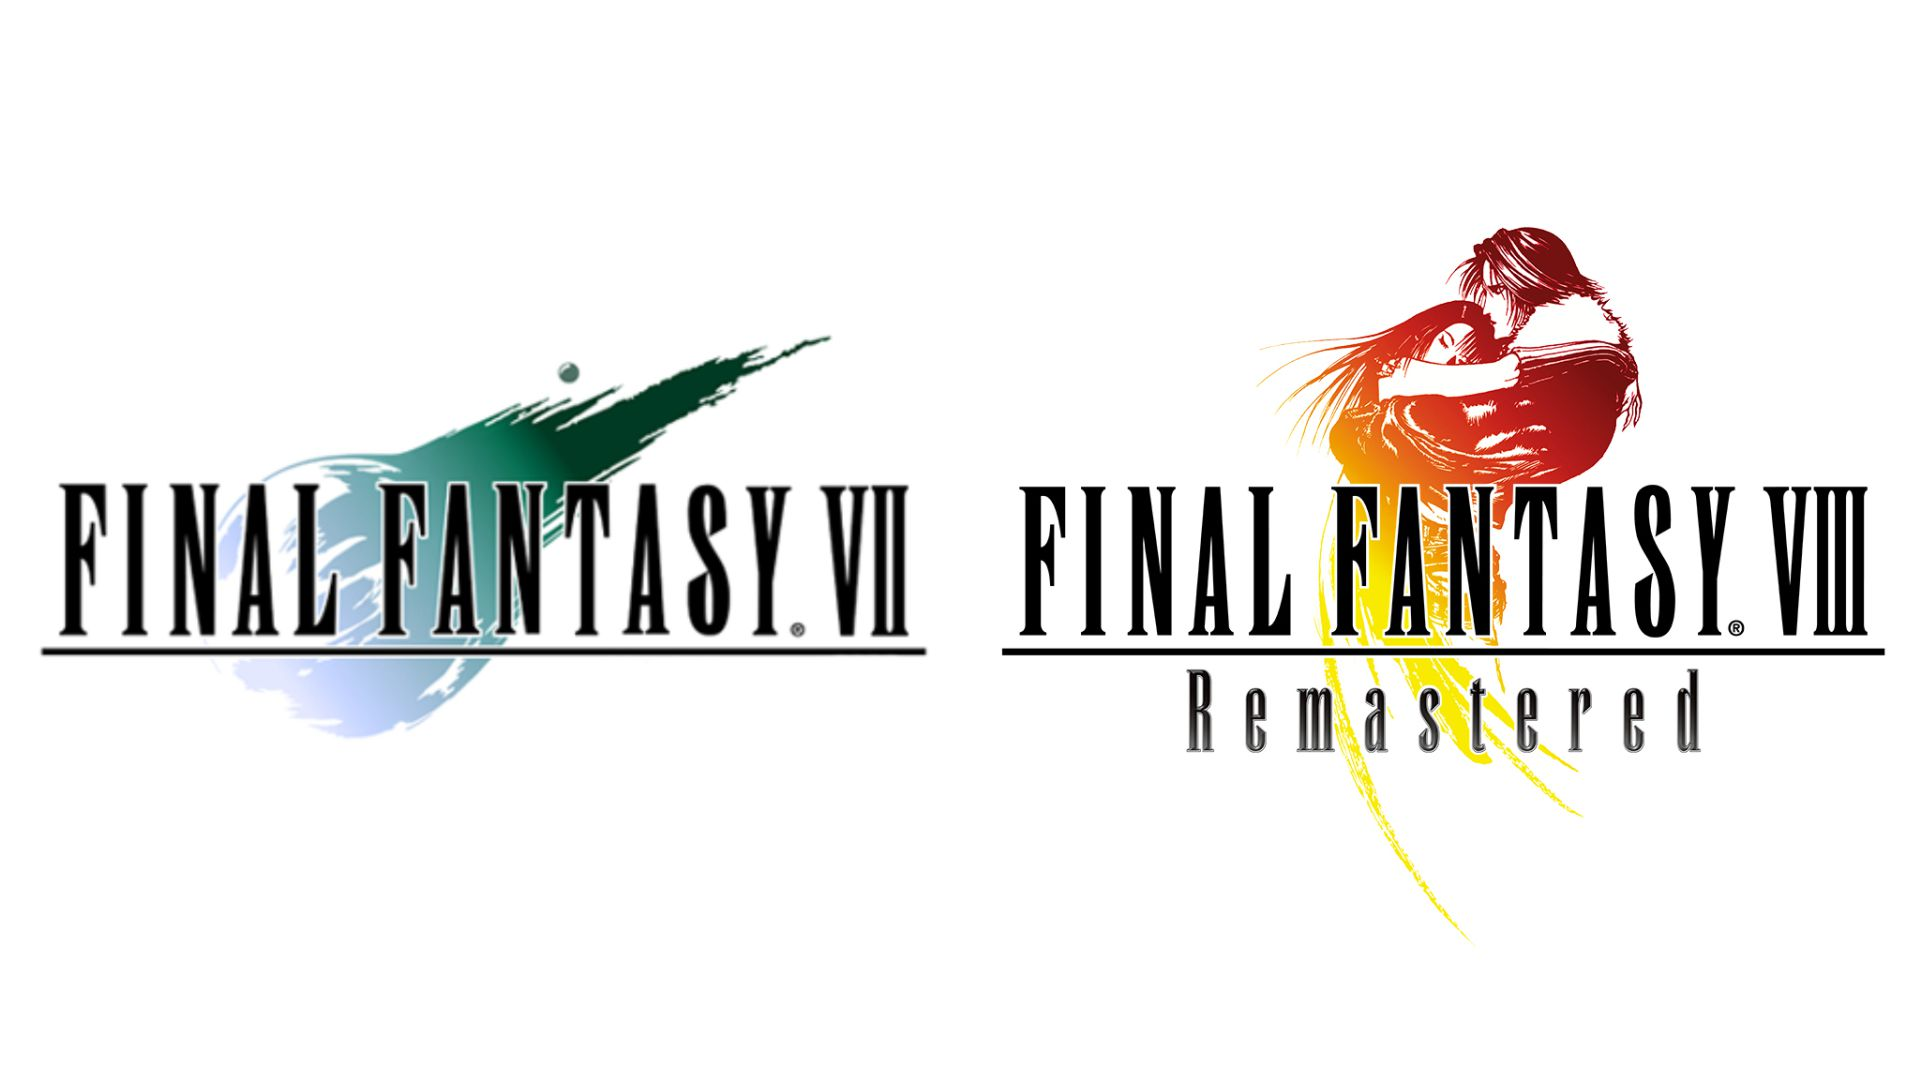 Final Fantasy VII and Final Fantasy VIII Remastered Twin Pack é anunciado  para o Switch na Ásia – Switch Brasil